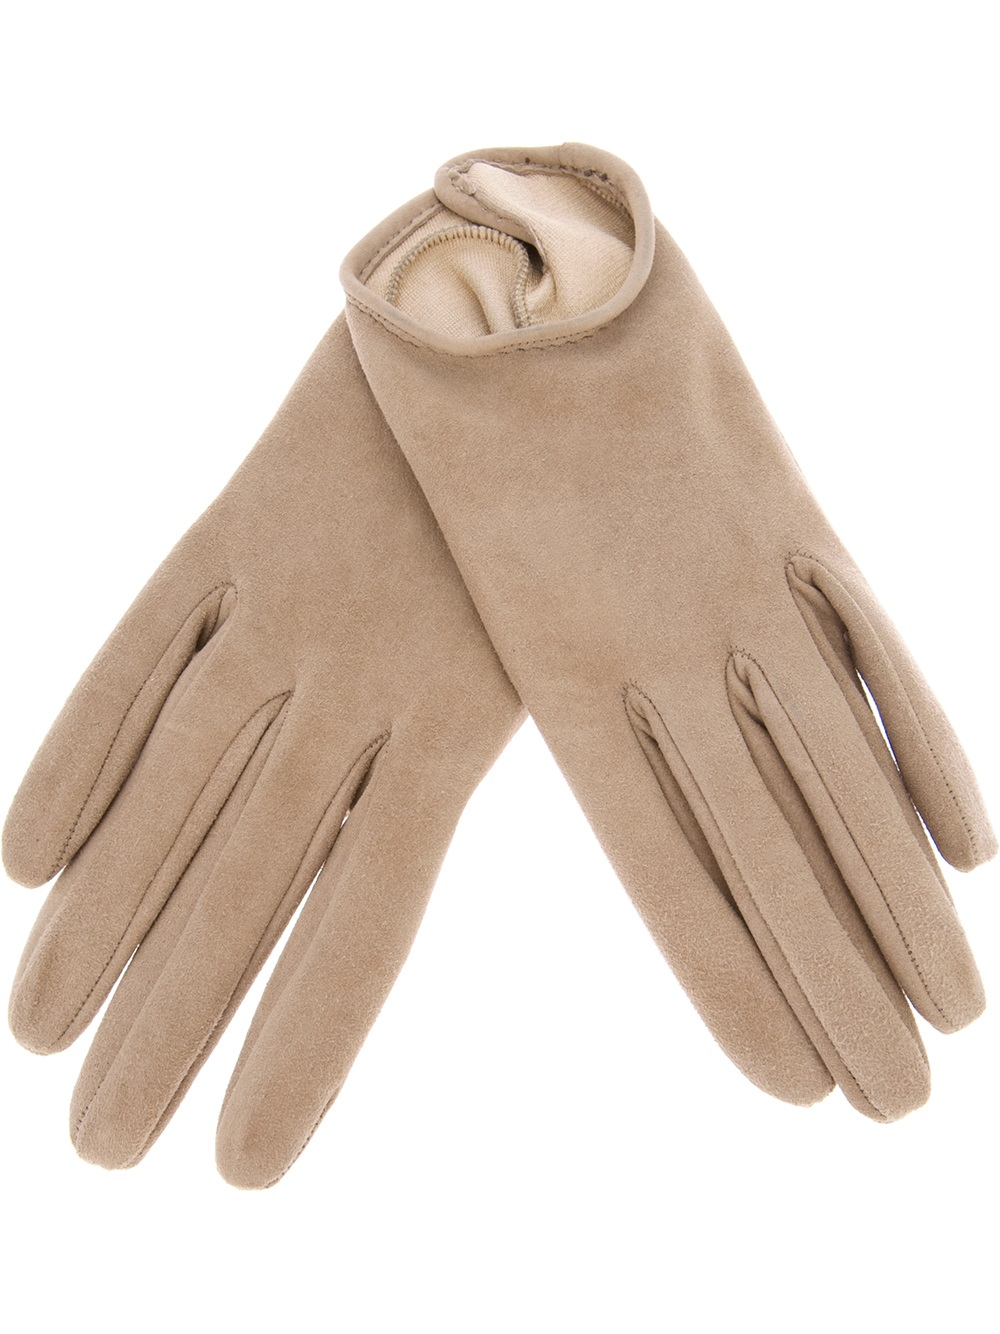 Womens beige leather gloves -  Womens Beige Leather Gloves Giorgio Armani Giorgio Armani Leather Gloves In Natural Lyst